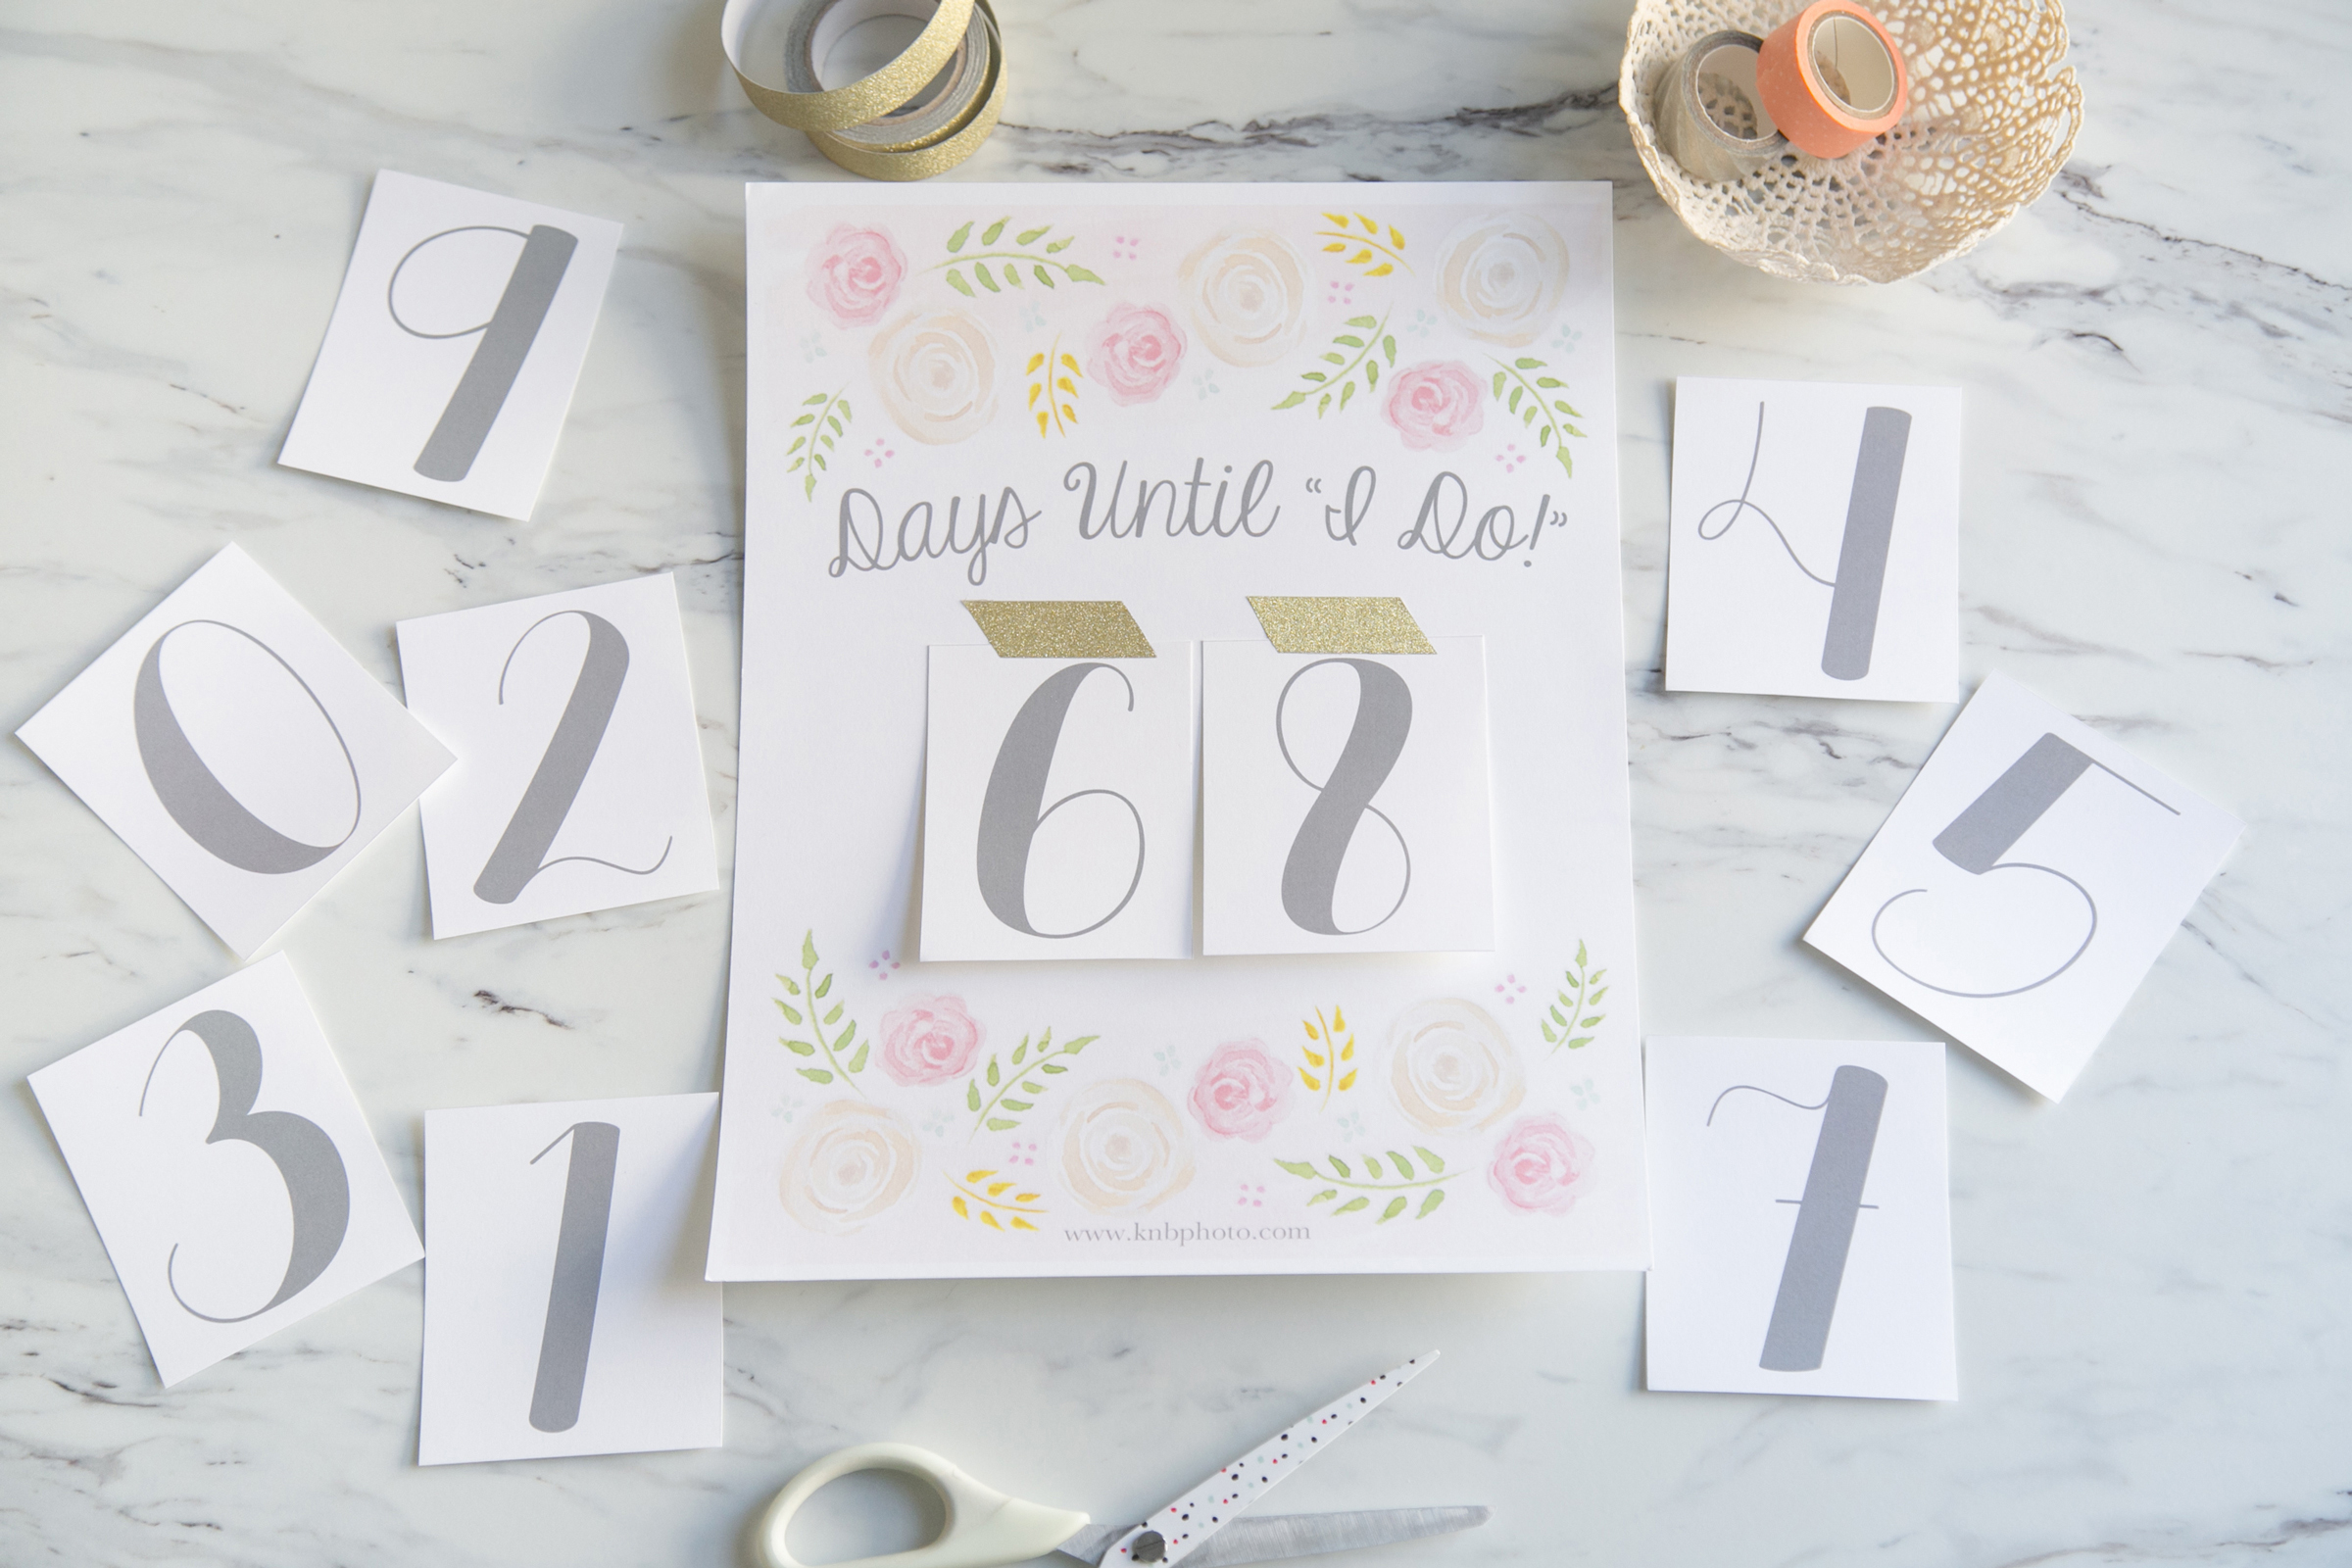 K+B Photography | Our Blog | Freebies: A Printable Wedding Countdown - Free Printable Wedding Countdown